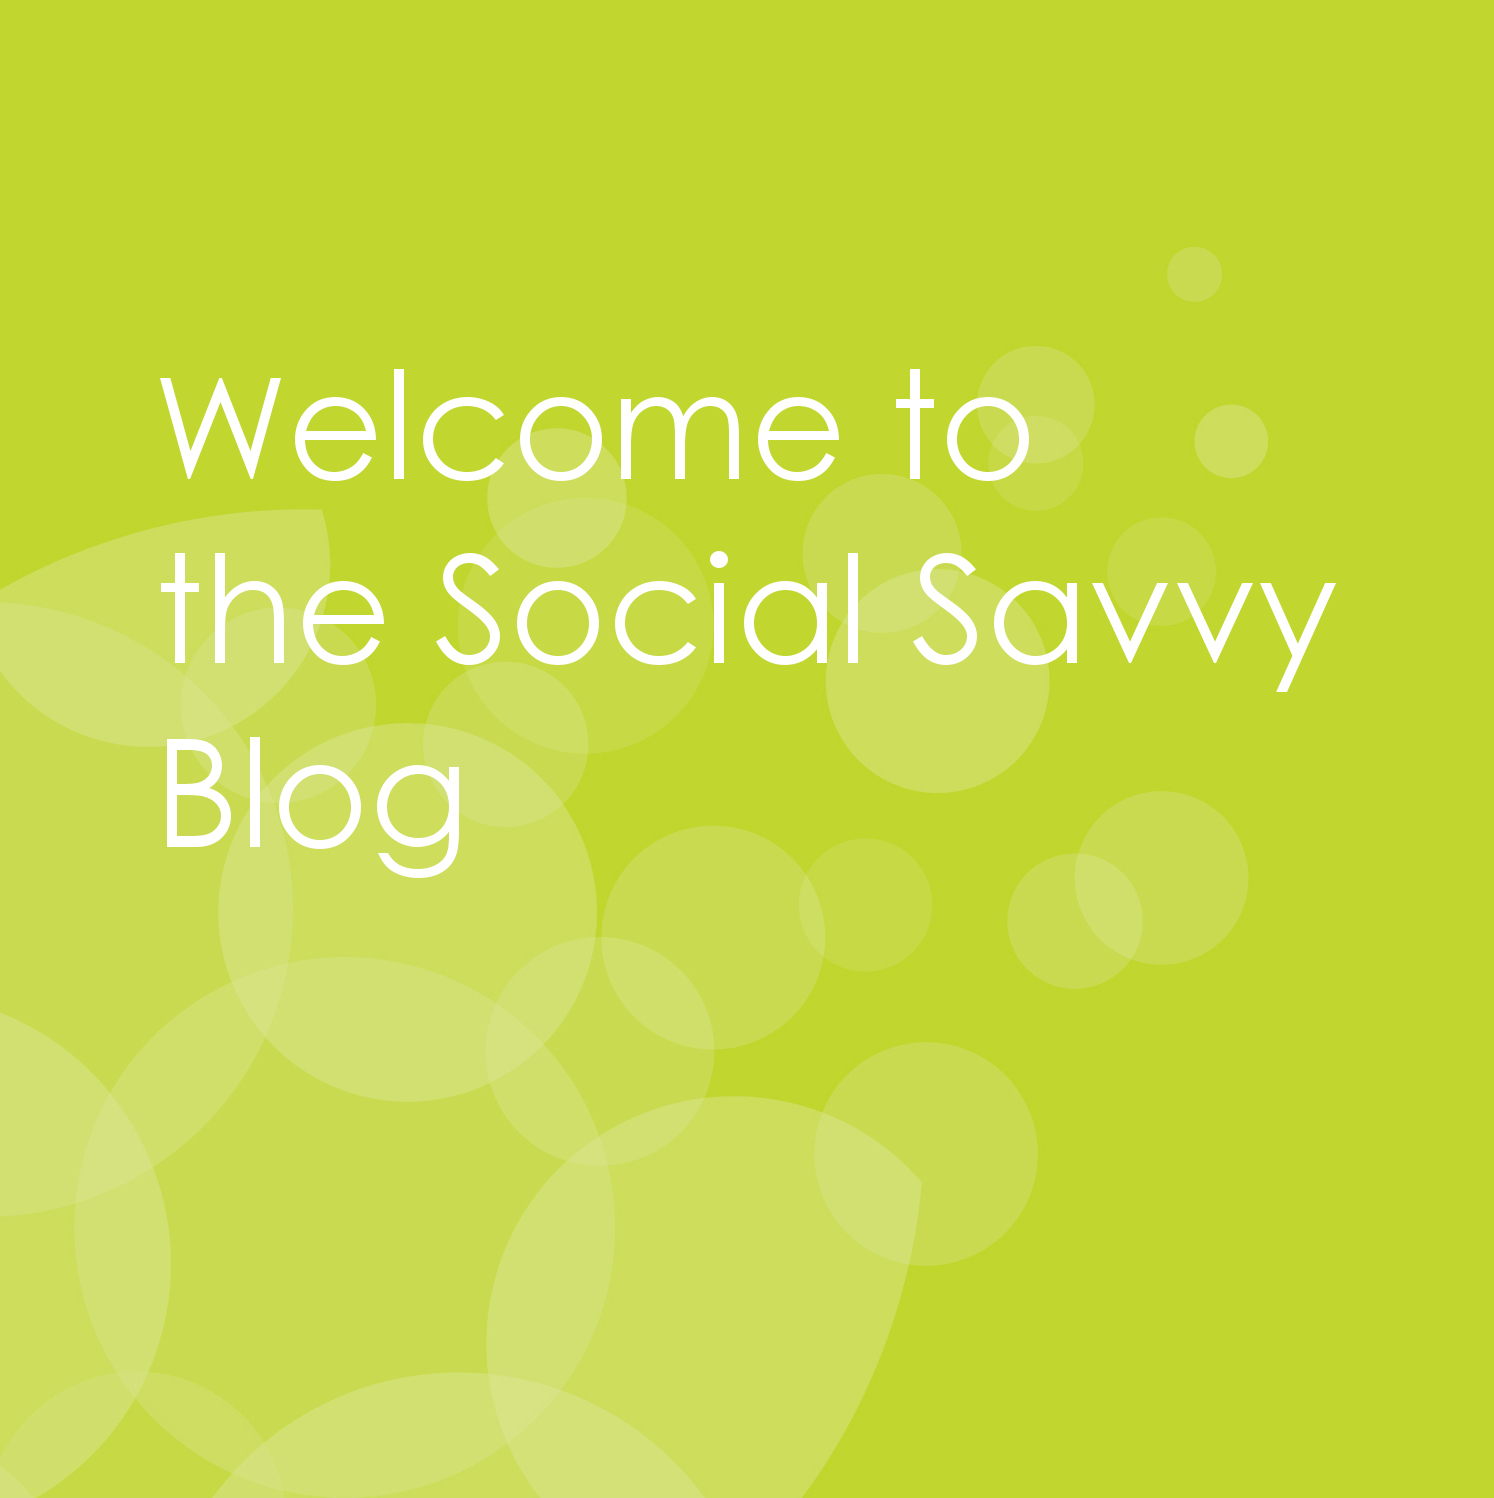 Welcome to the Social Savvy Blog